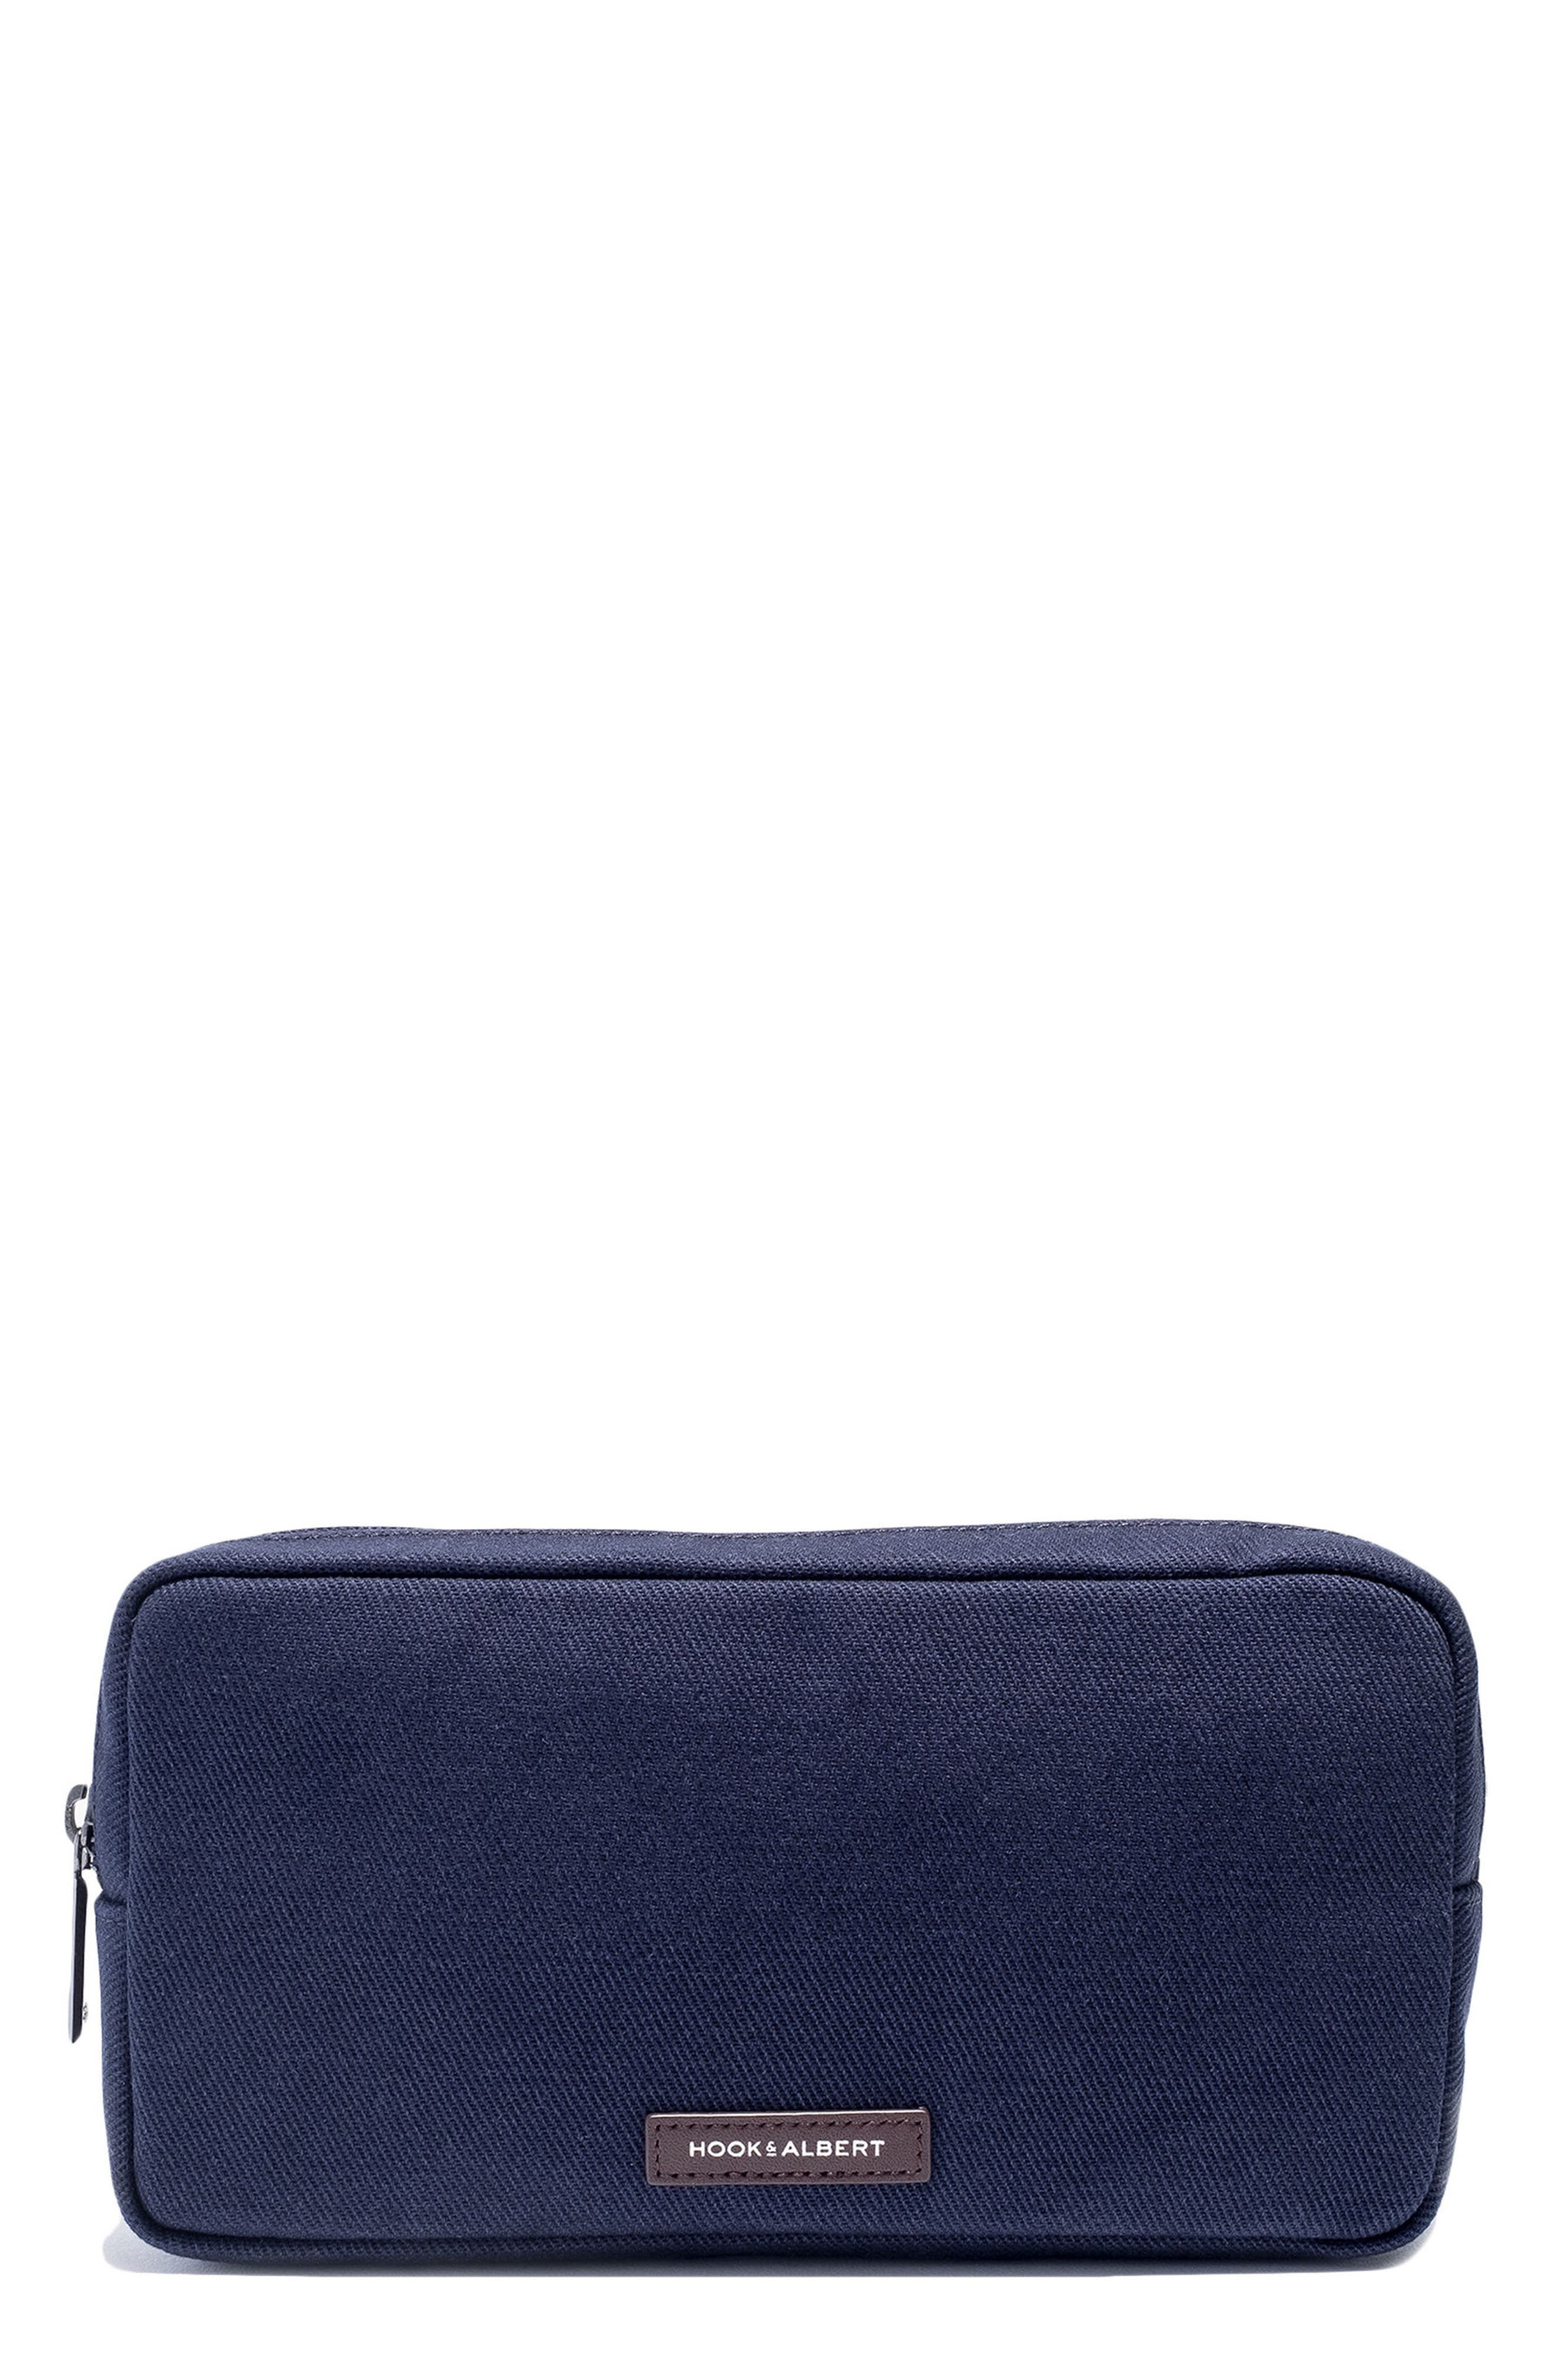 Hideaway Dopp Kit,                         Main,                         color, NAVY